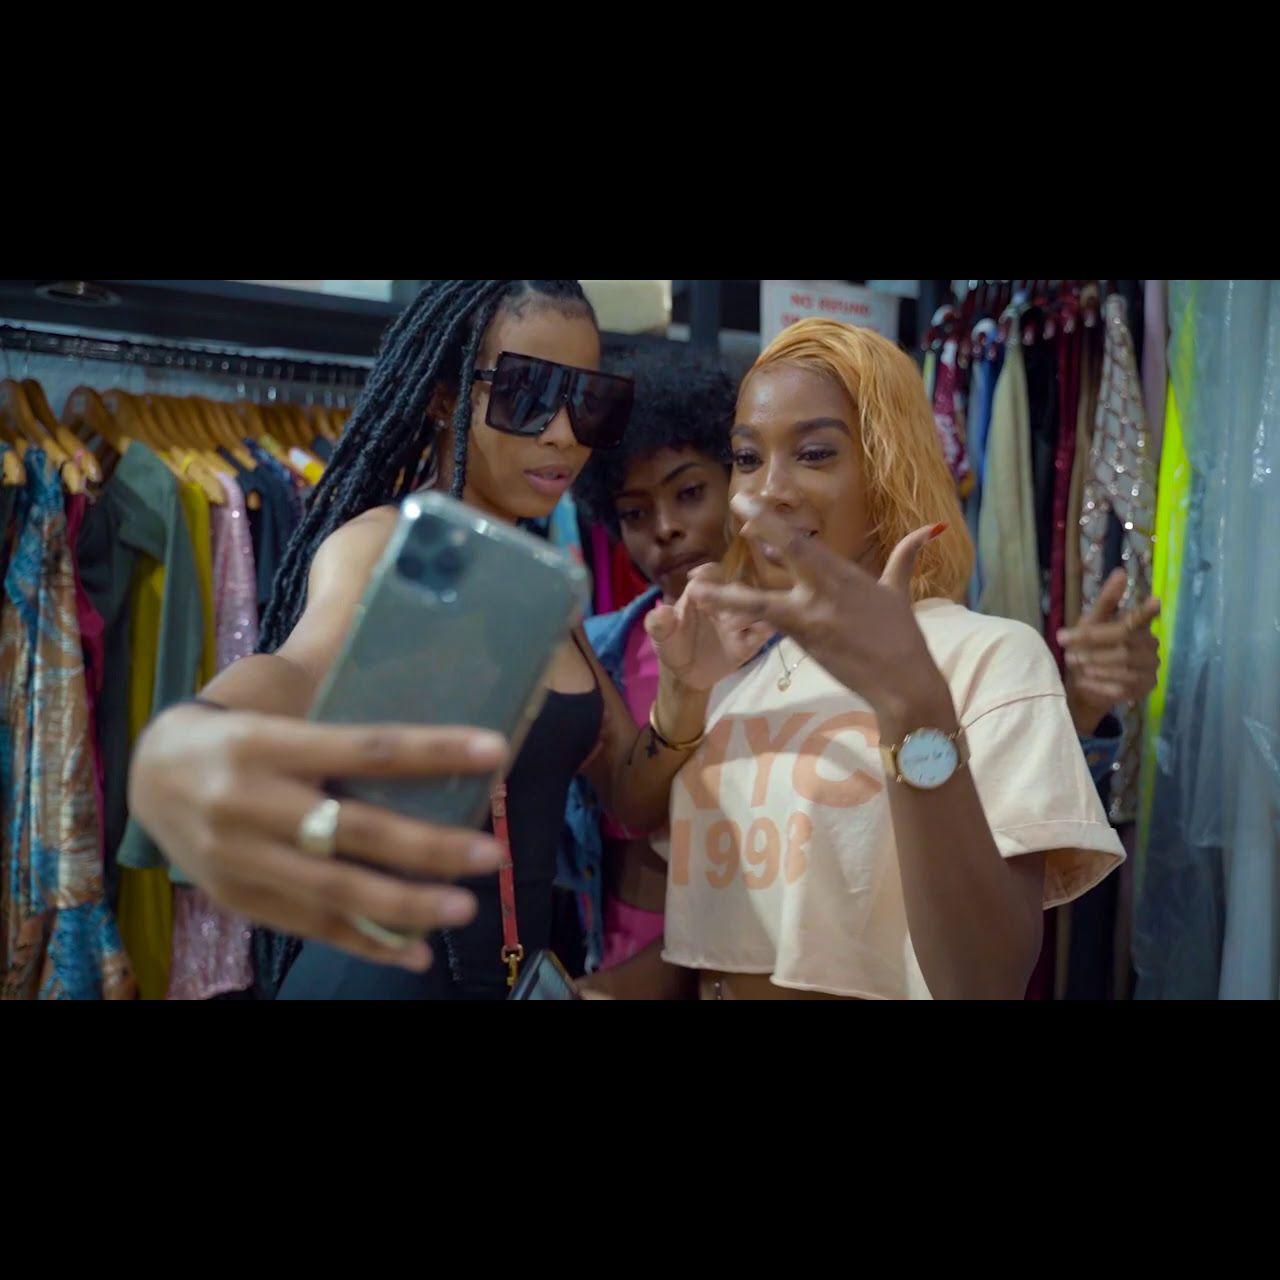 Vybz Kartel - Popular (ft. Likkle Addi) (Thumbnail)